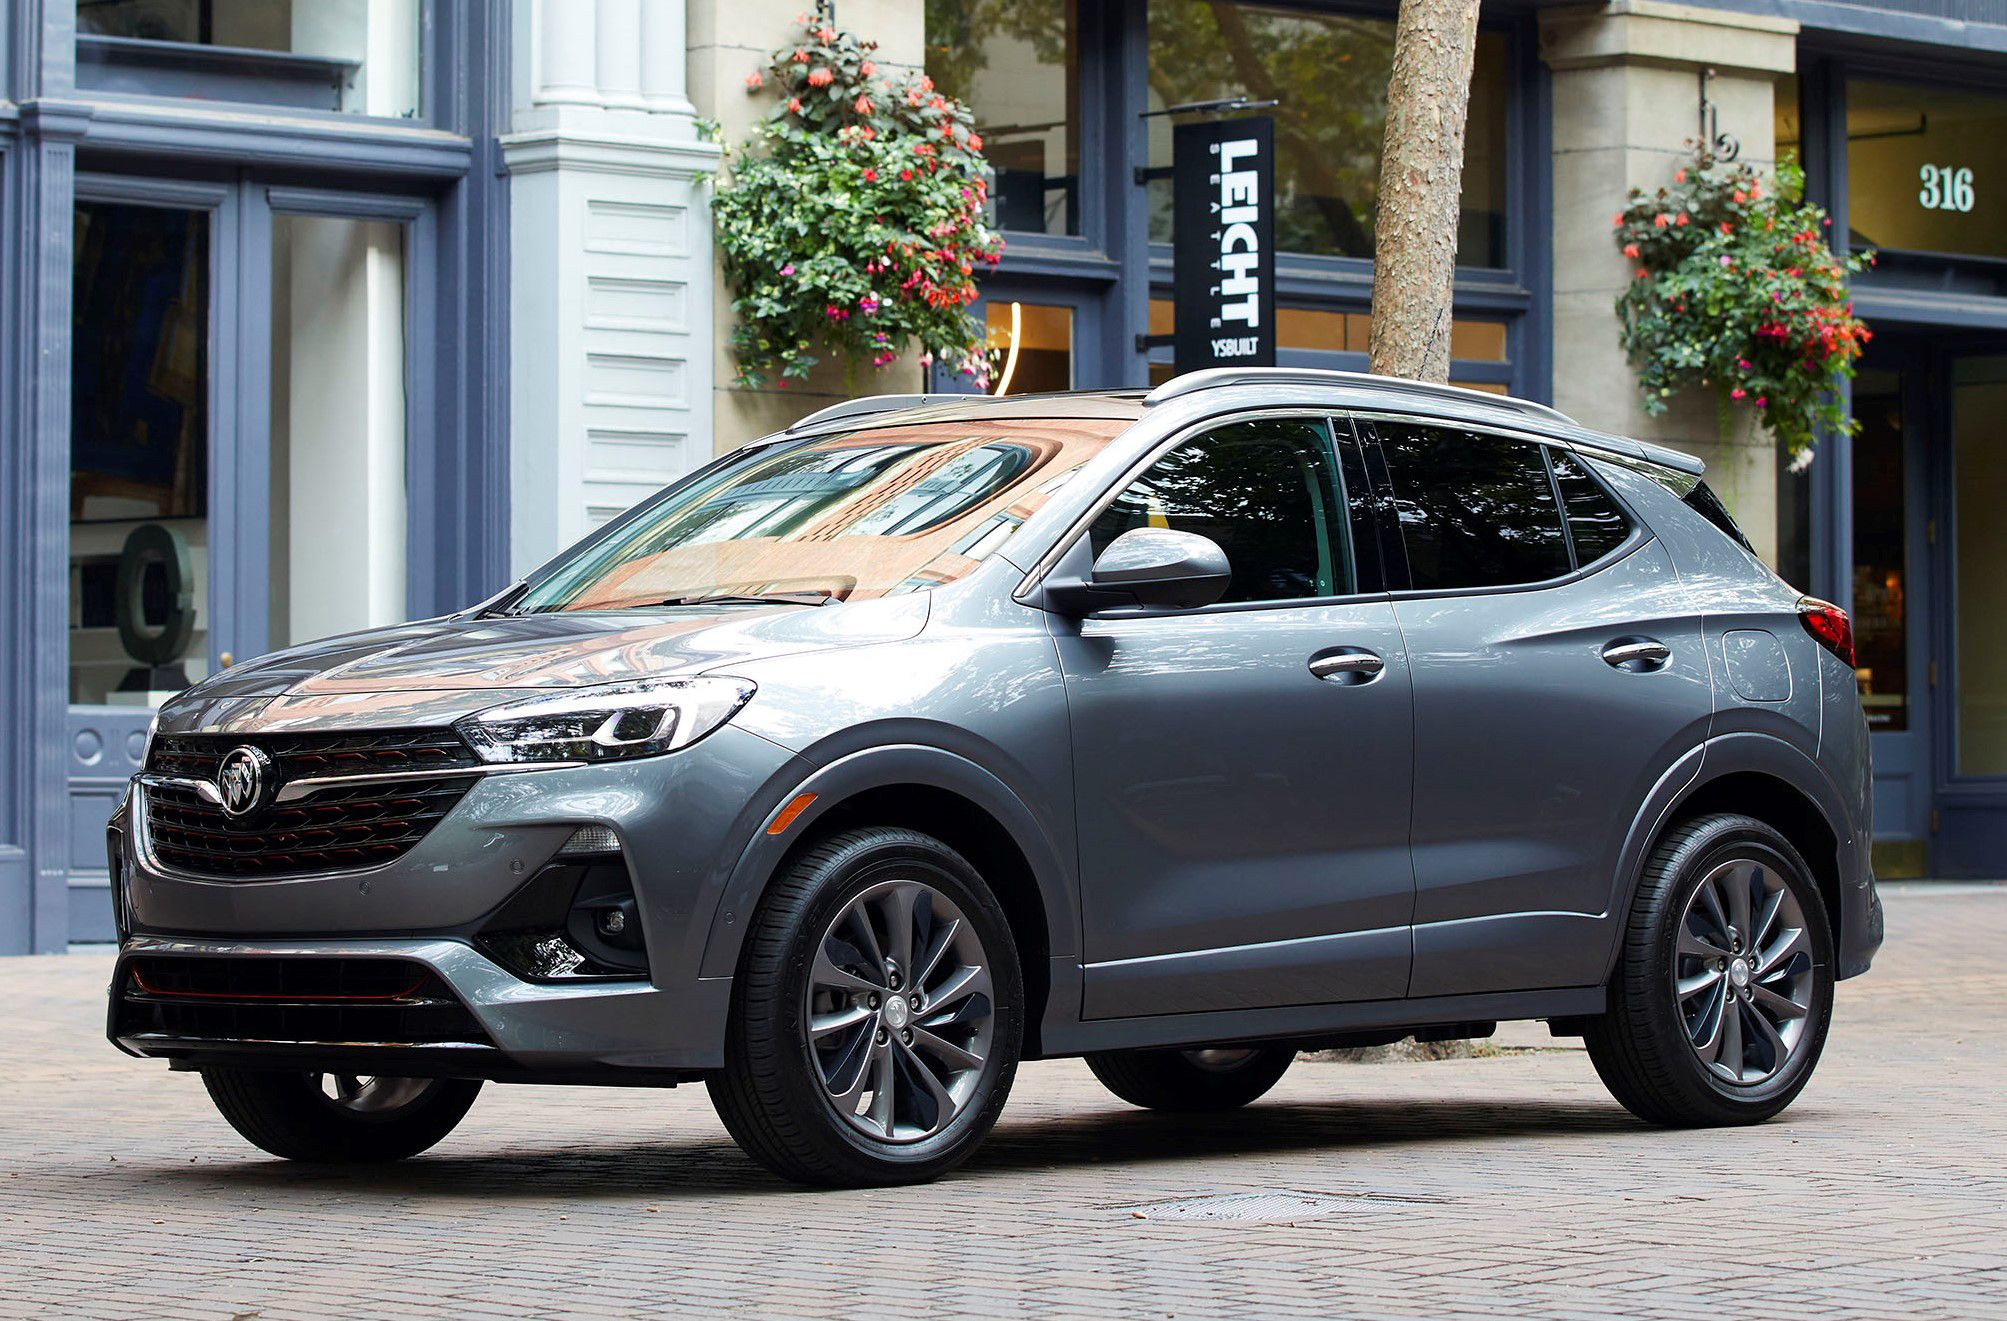 2020 Buick Encore In 2020 Buick Encore Compact Suv Buick